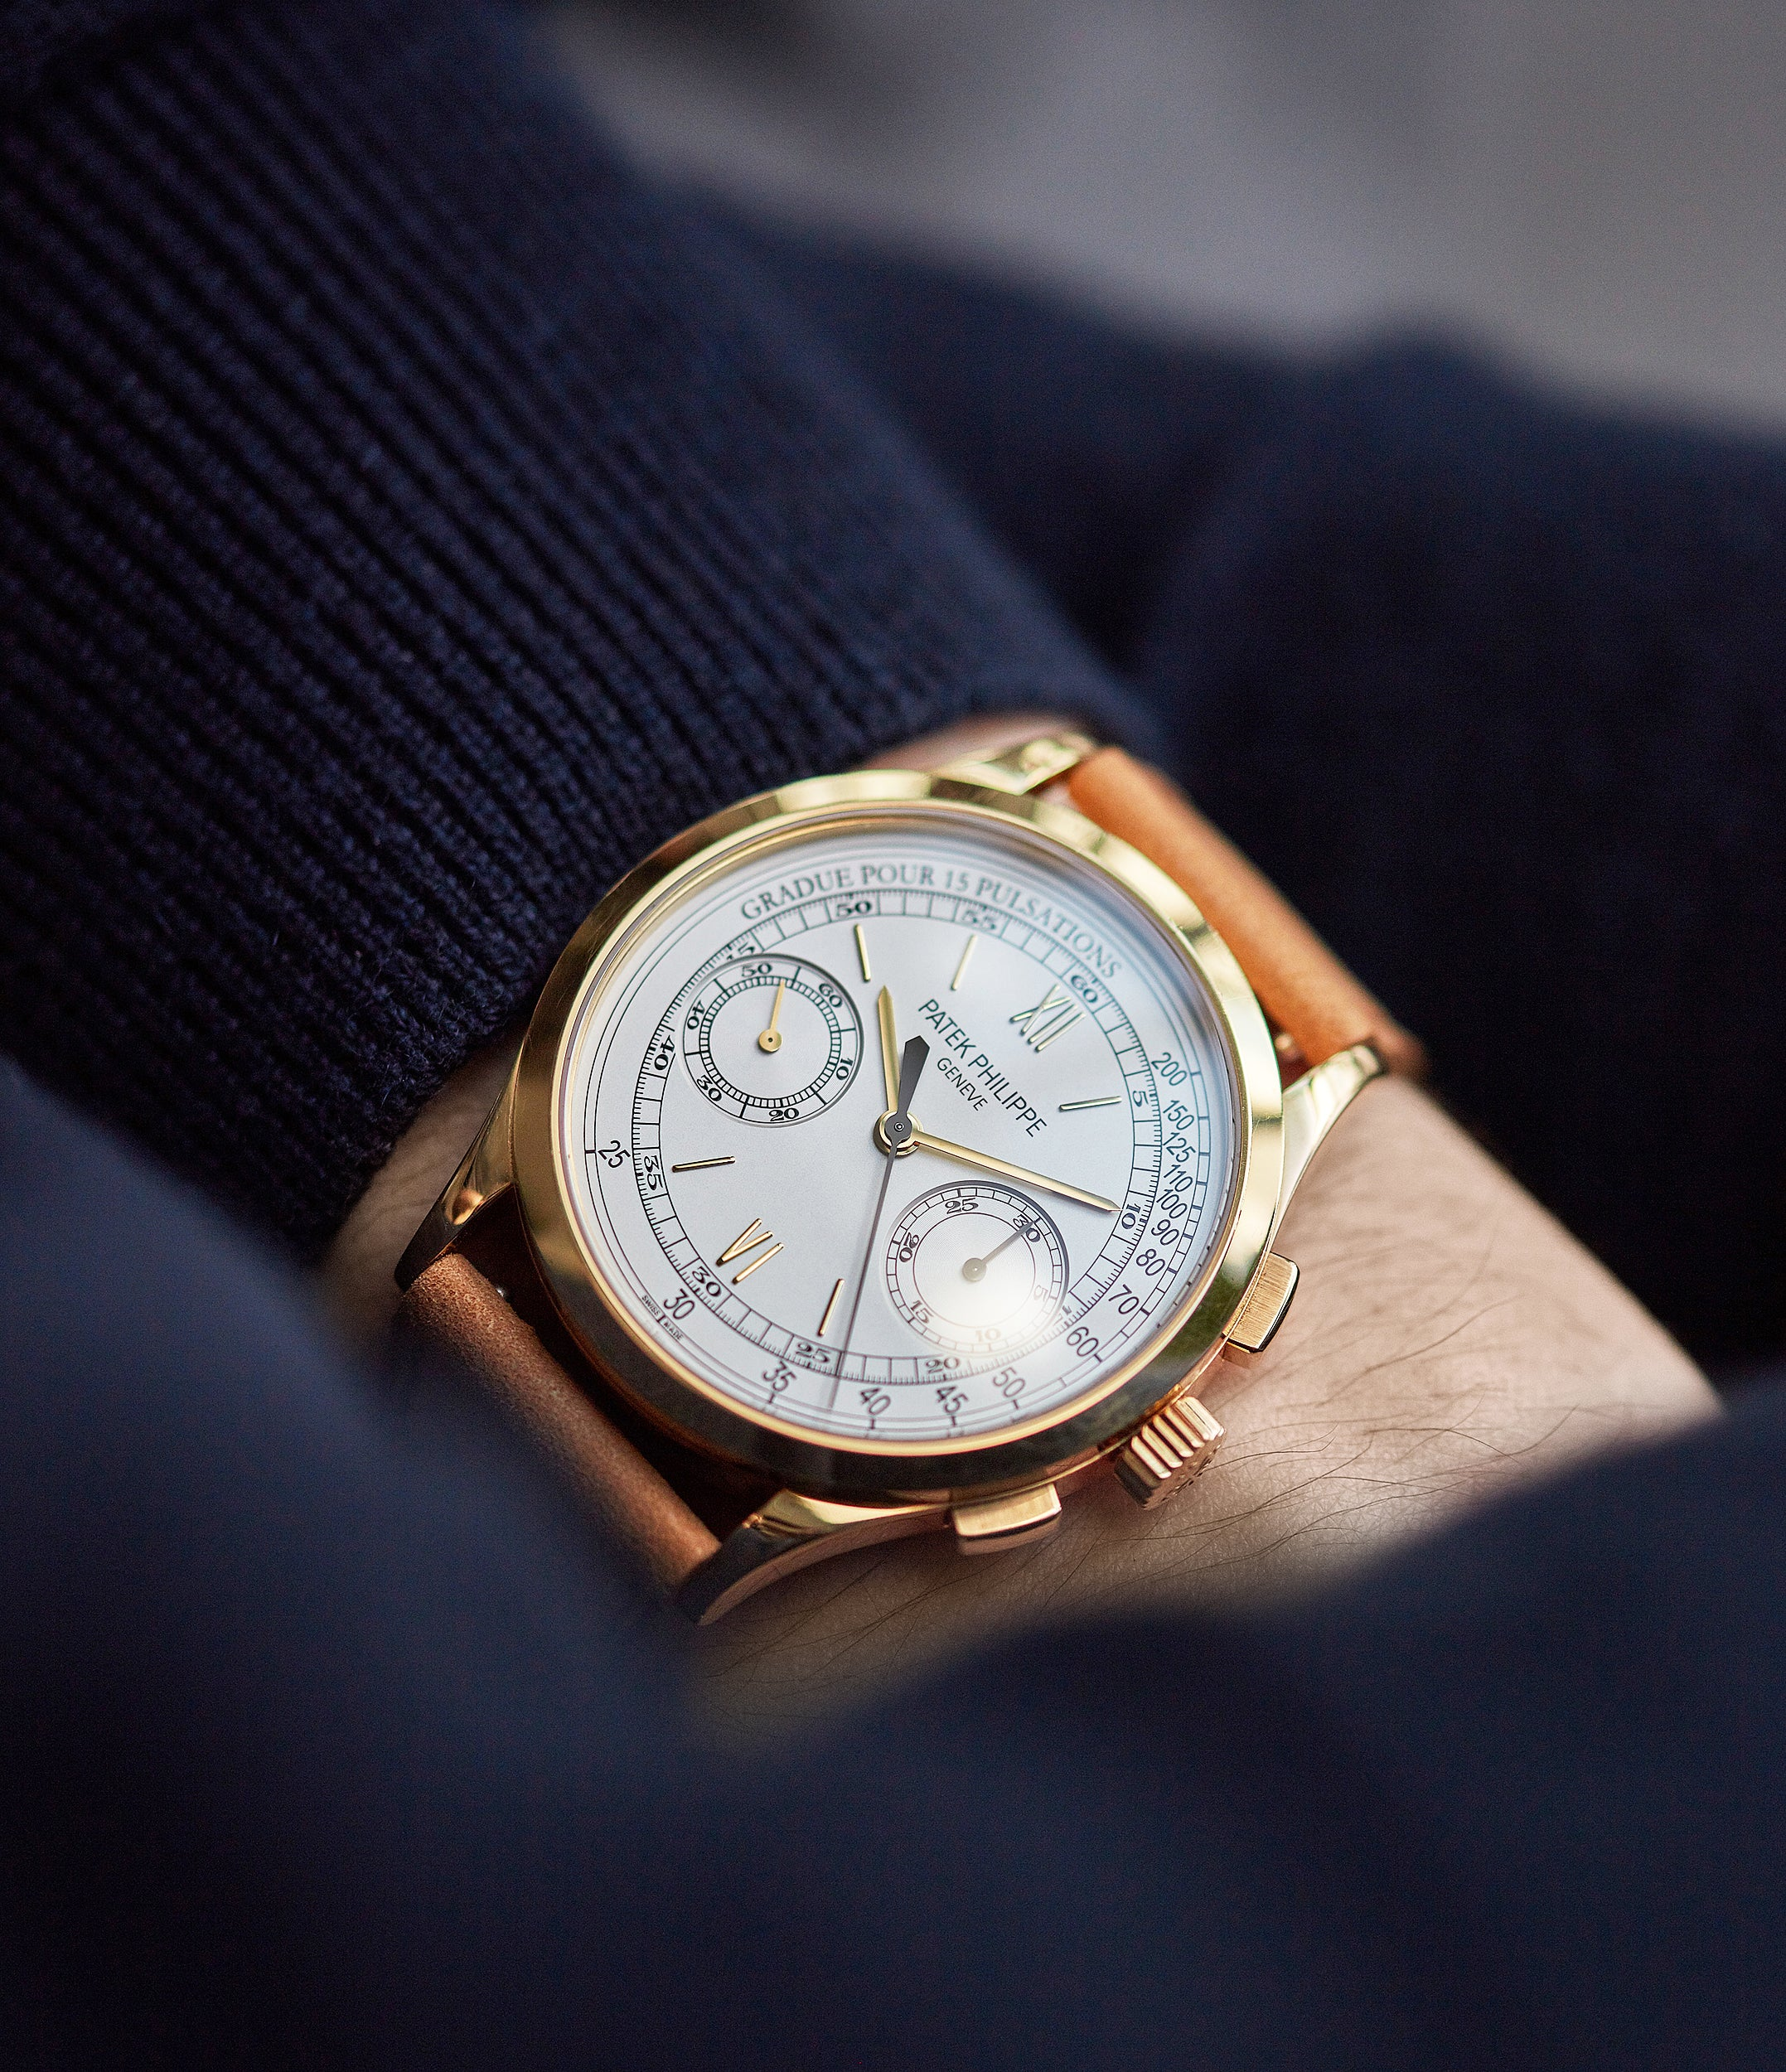 rare Patek Philippe 5170J-001 Chronograph yellow gold dress pre-owned watch for sale online at A Collected Man London UK specialist of rare watches